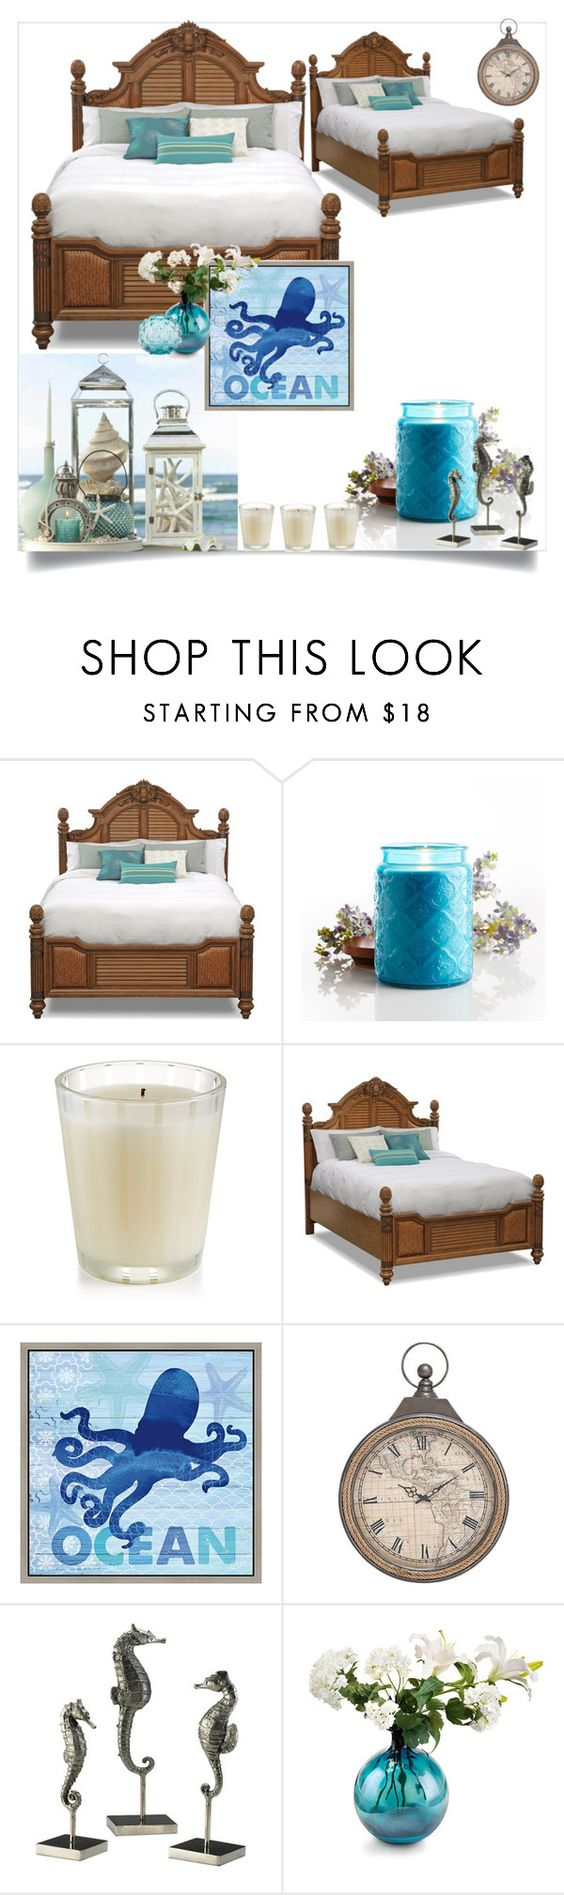 """""""Ocean"""" by ac-awesome ❤ liked on Polyvore featuring interior, interiors, interior design, home, home decor, interior decorating, Pier 1 Imports, Home Design Studio, Green Leaf Art and Universal Lighting and Decor"""